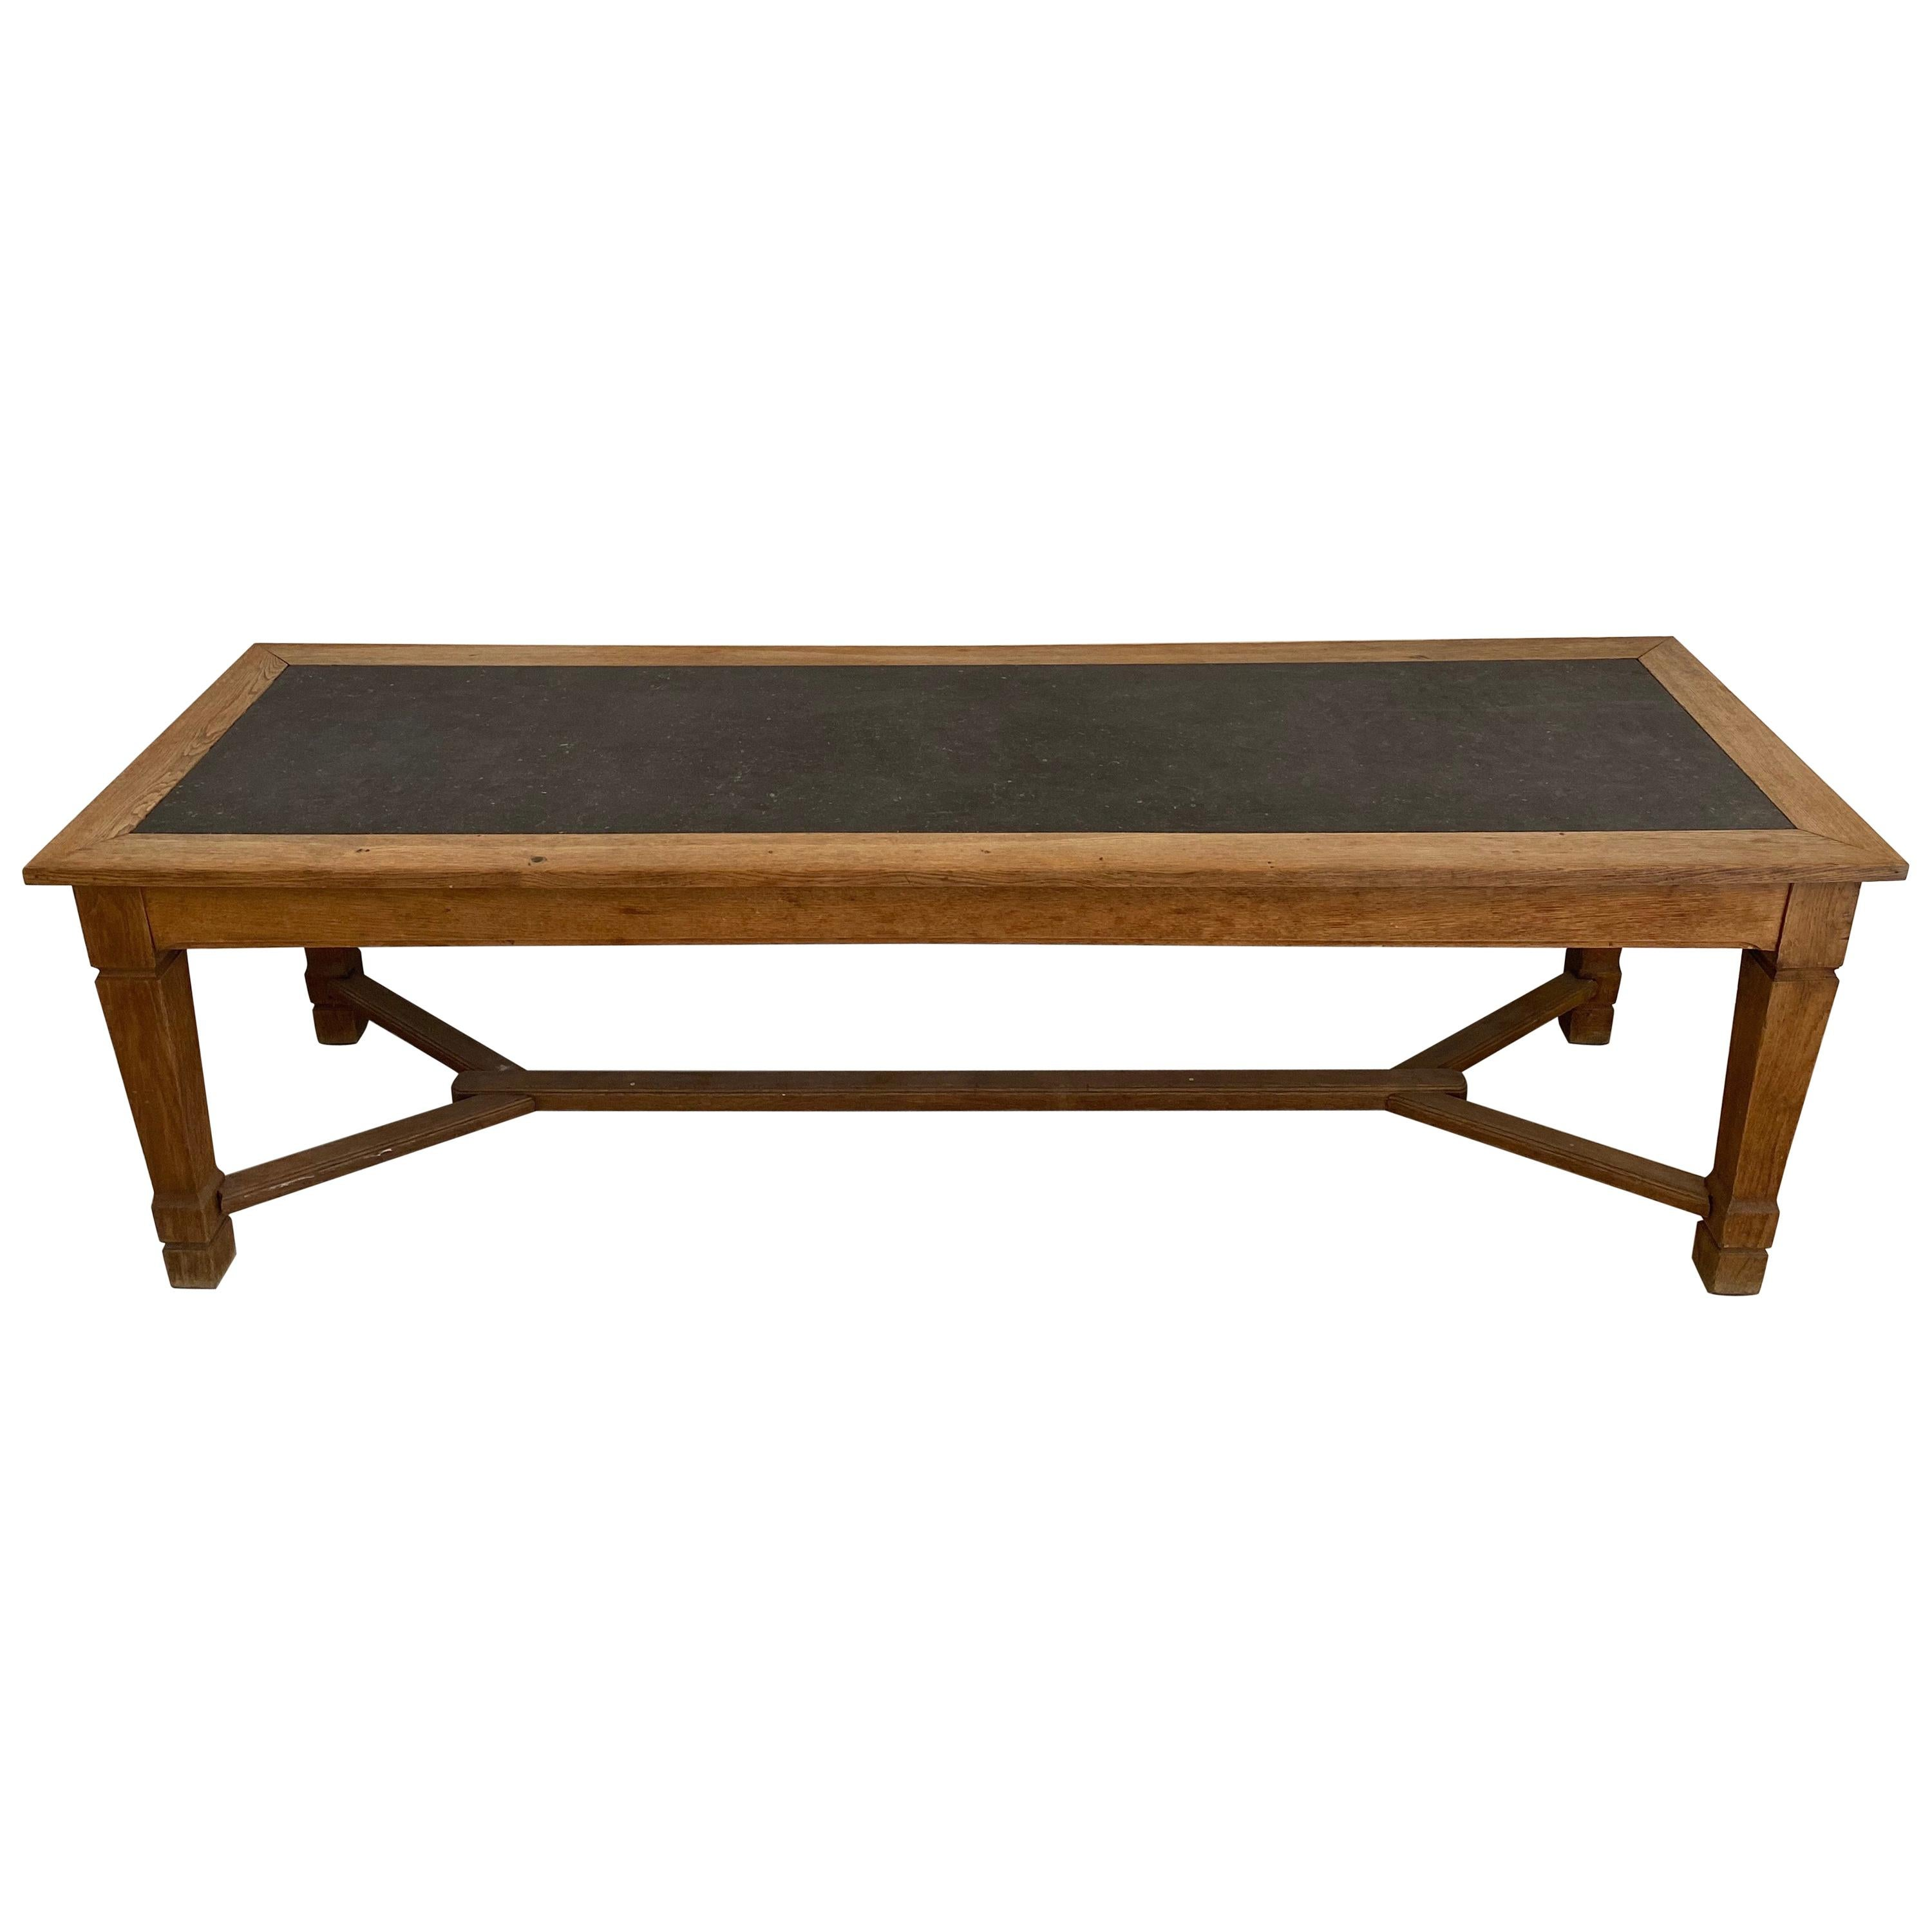 Large Monastery Dinning Table Made of Oak with a Blue Stone Top, French